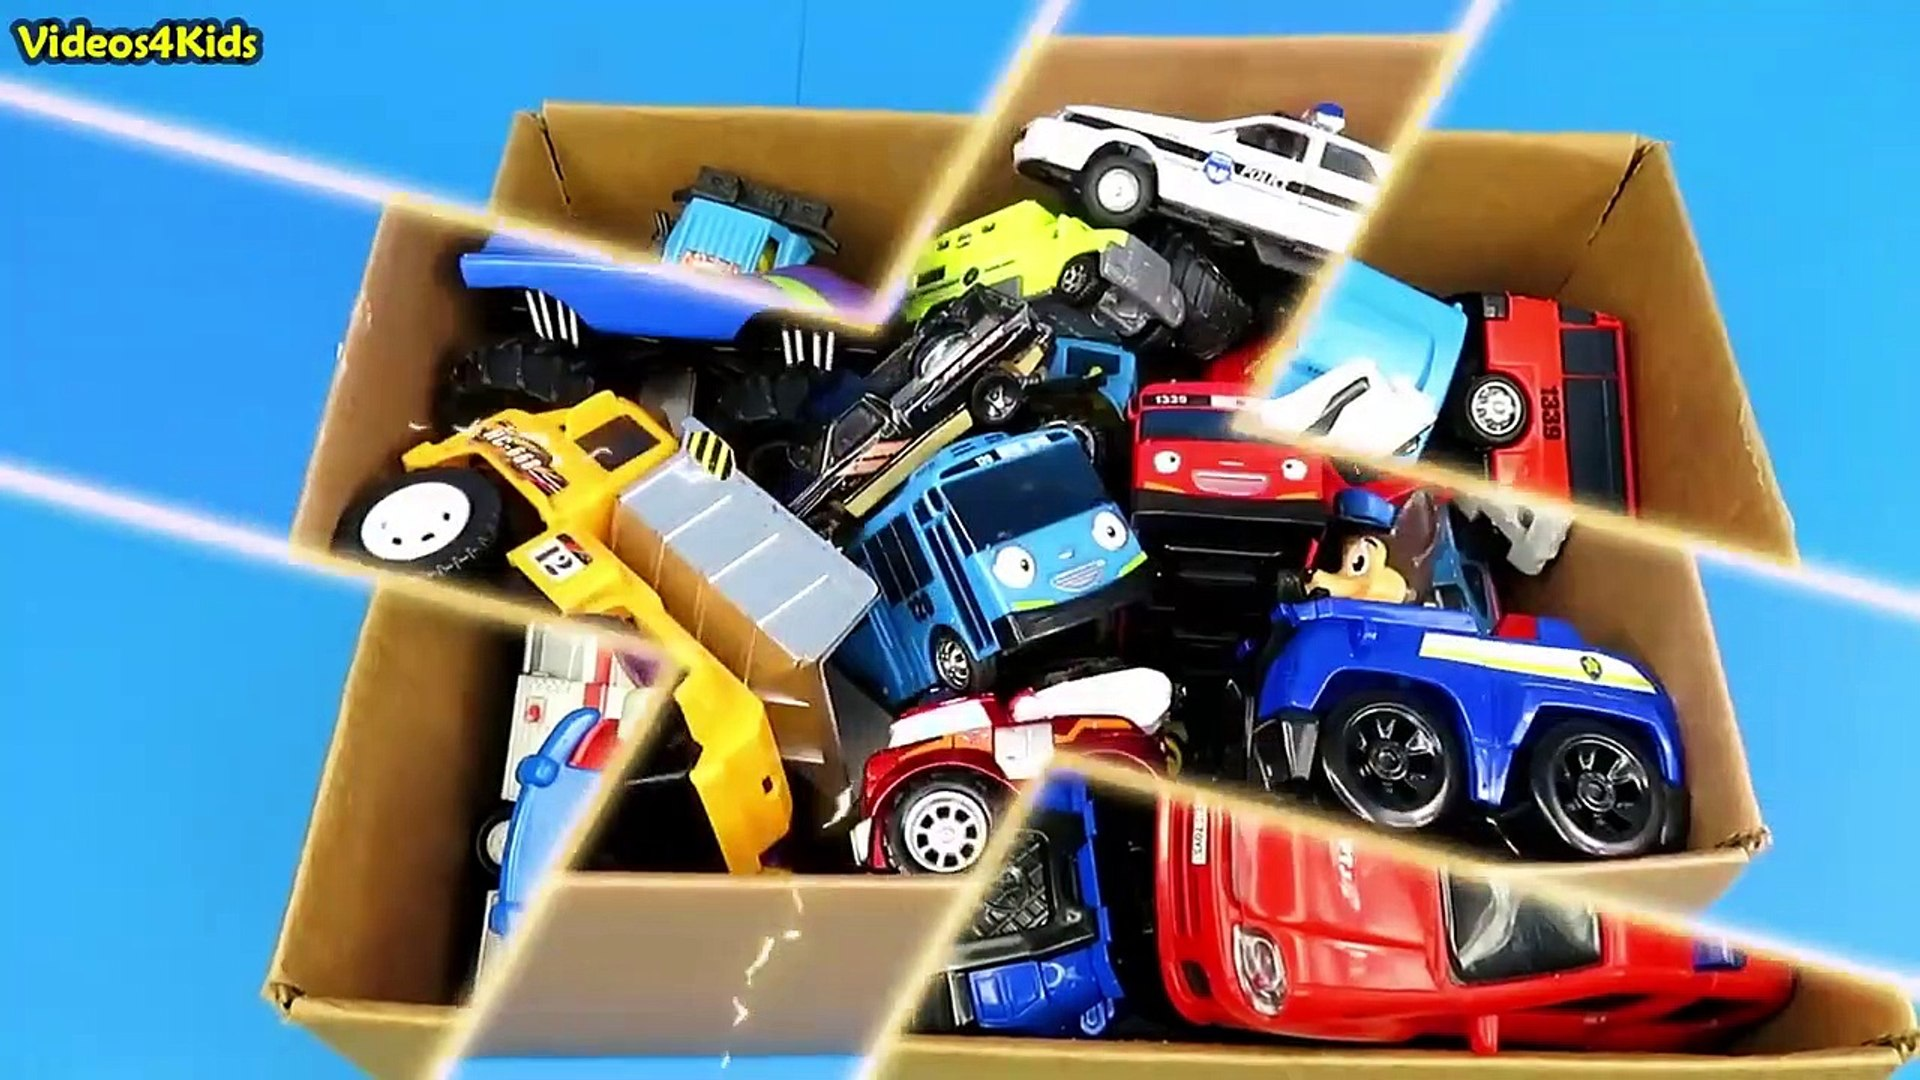 Box Full Of Toys McQueen Cars Disney Car Action Figures Learn Street Vehicles Names Sounds For Kids